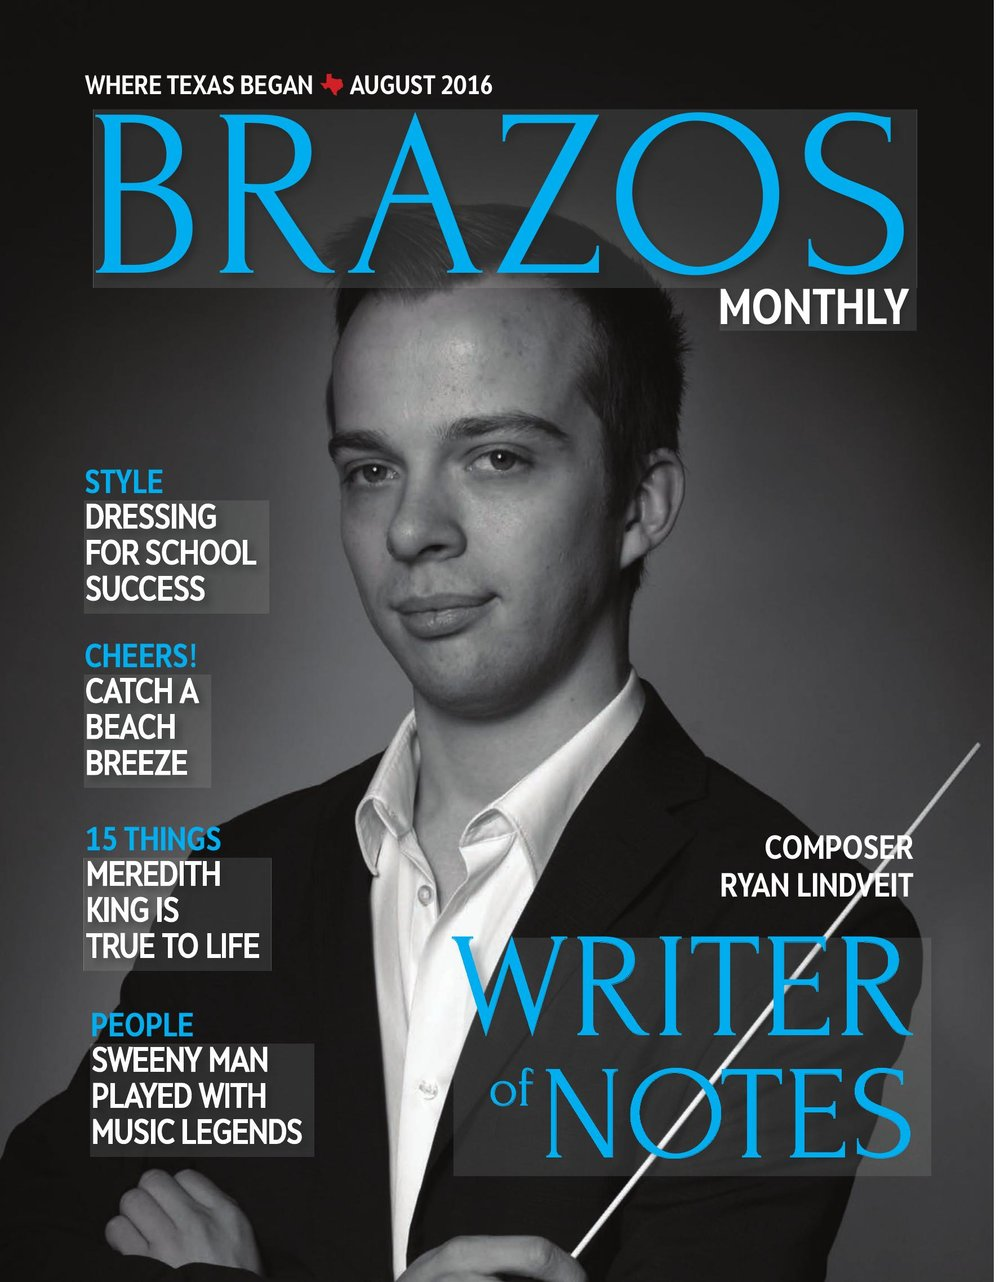 Brazos Monthly Cover.jpg